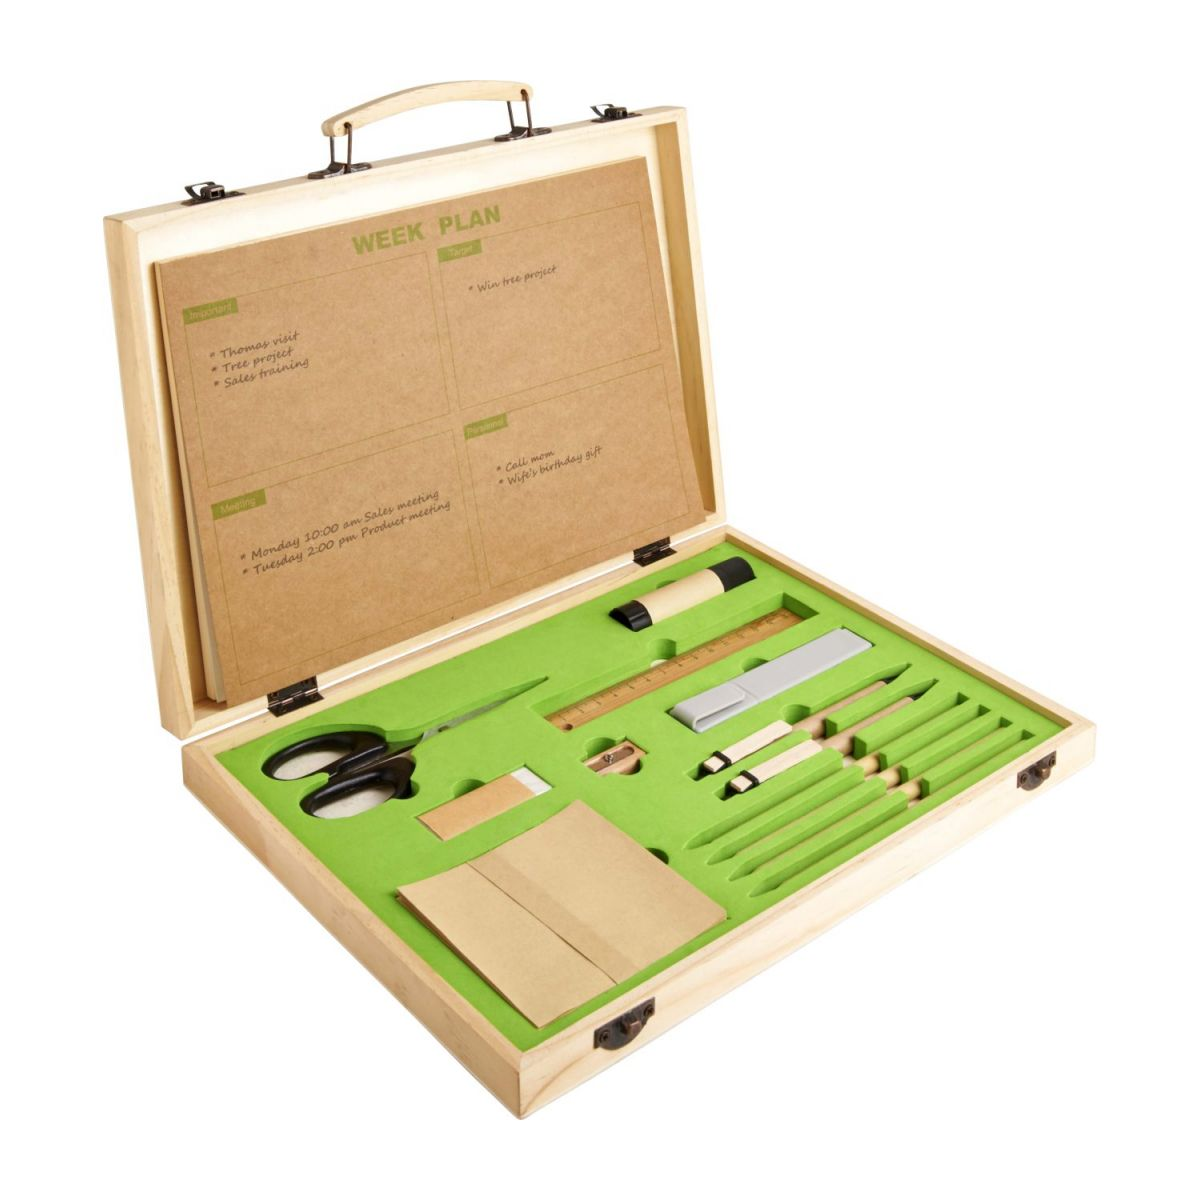 Stationery box (14 pieces) n°1